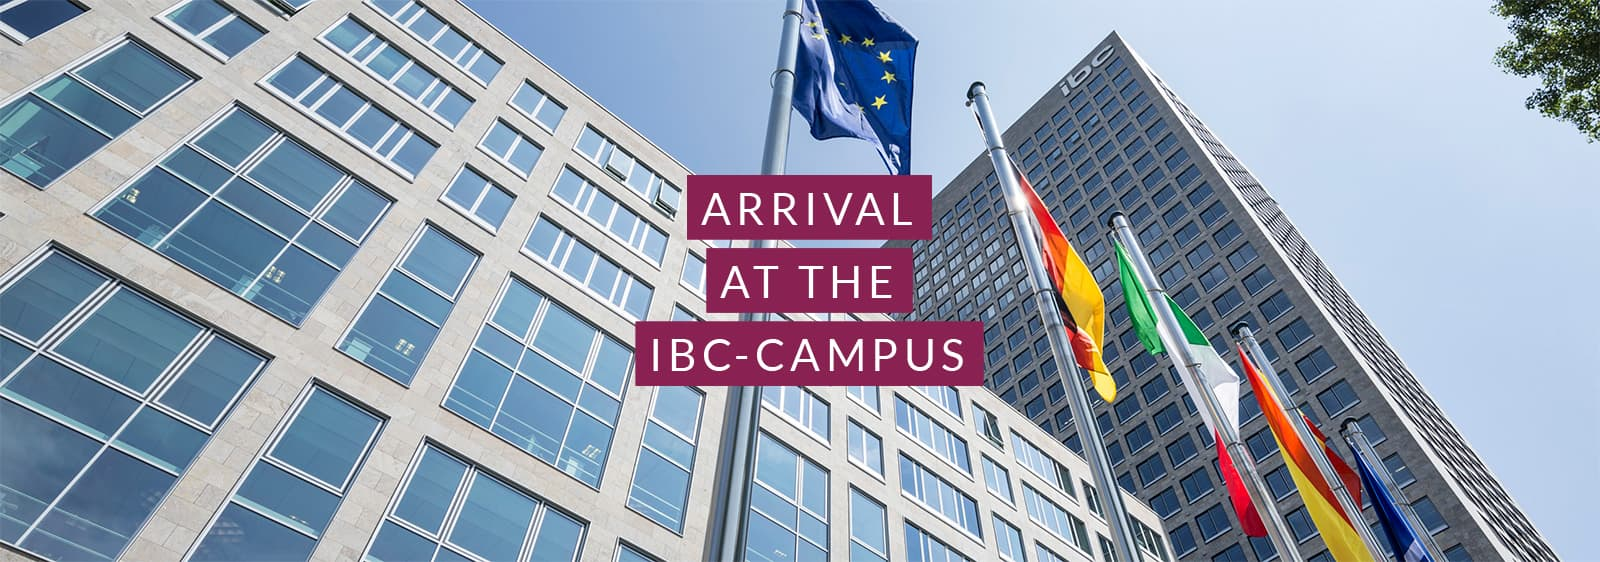 Arrival at the ibc-Campus